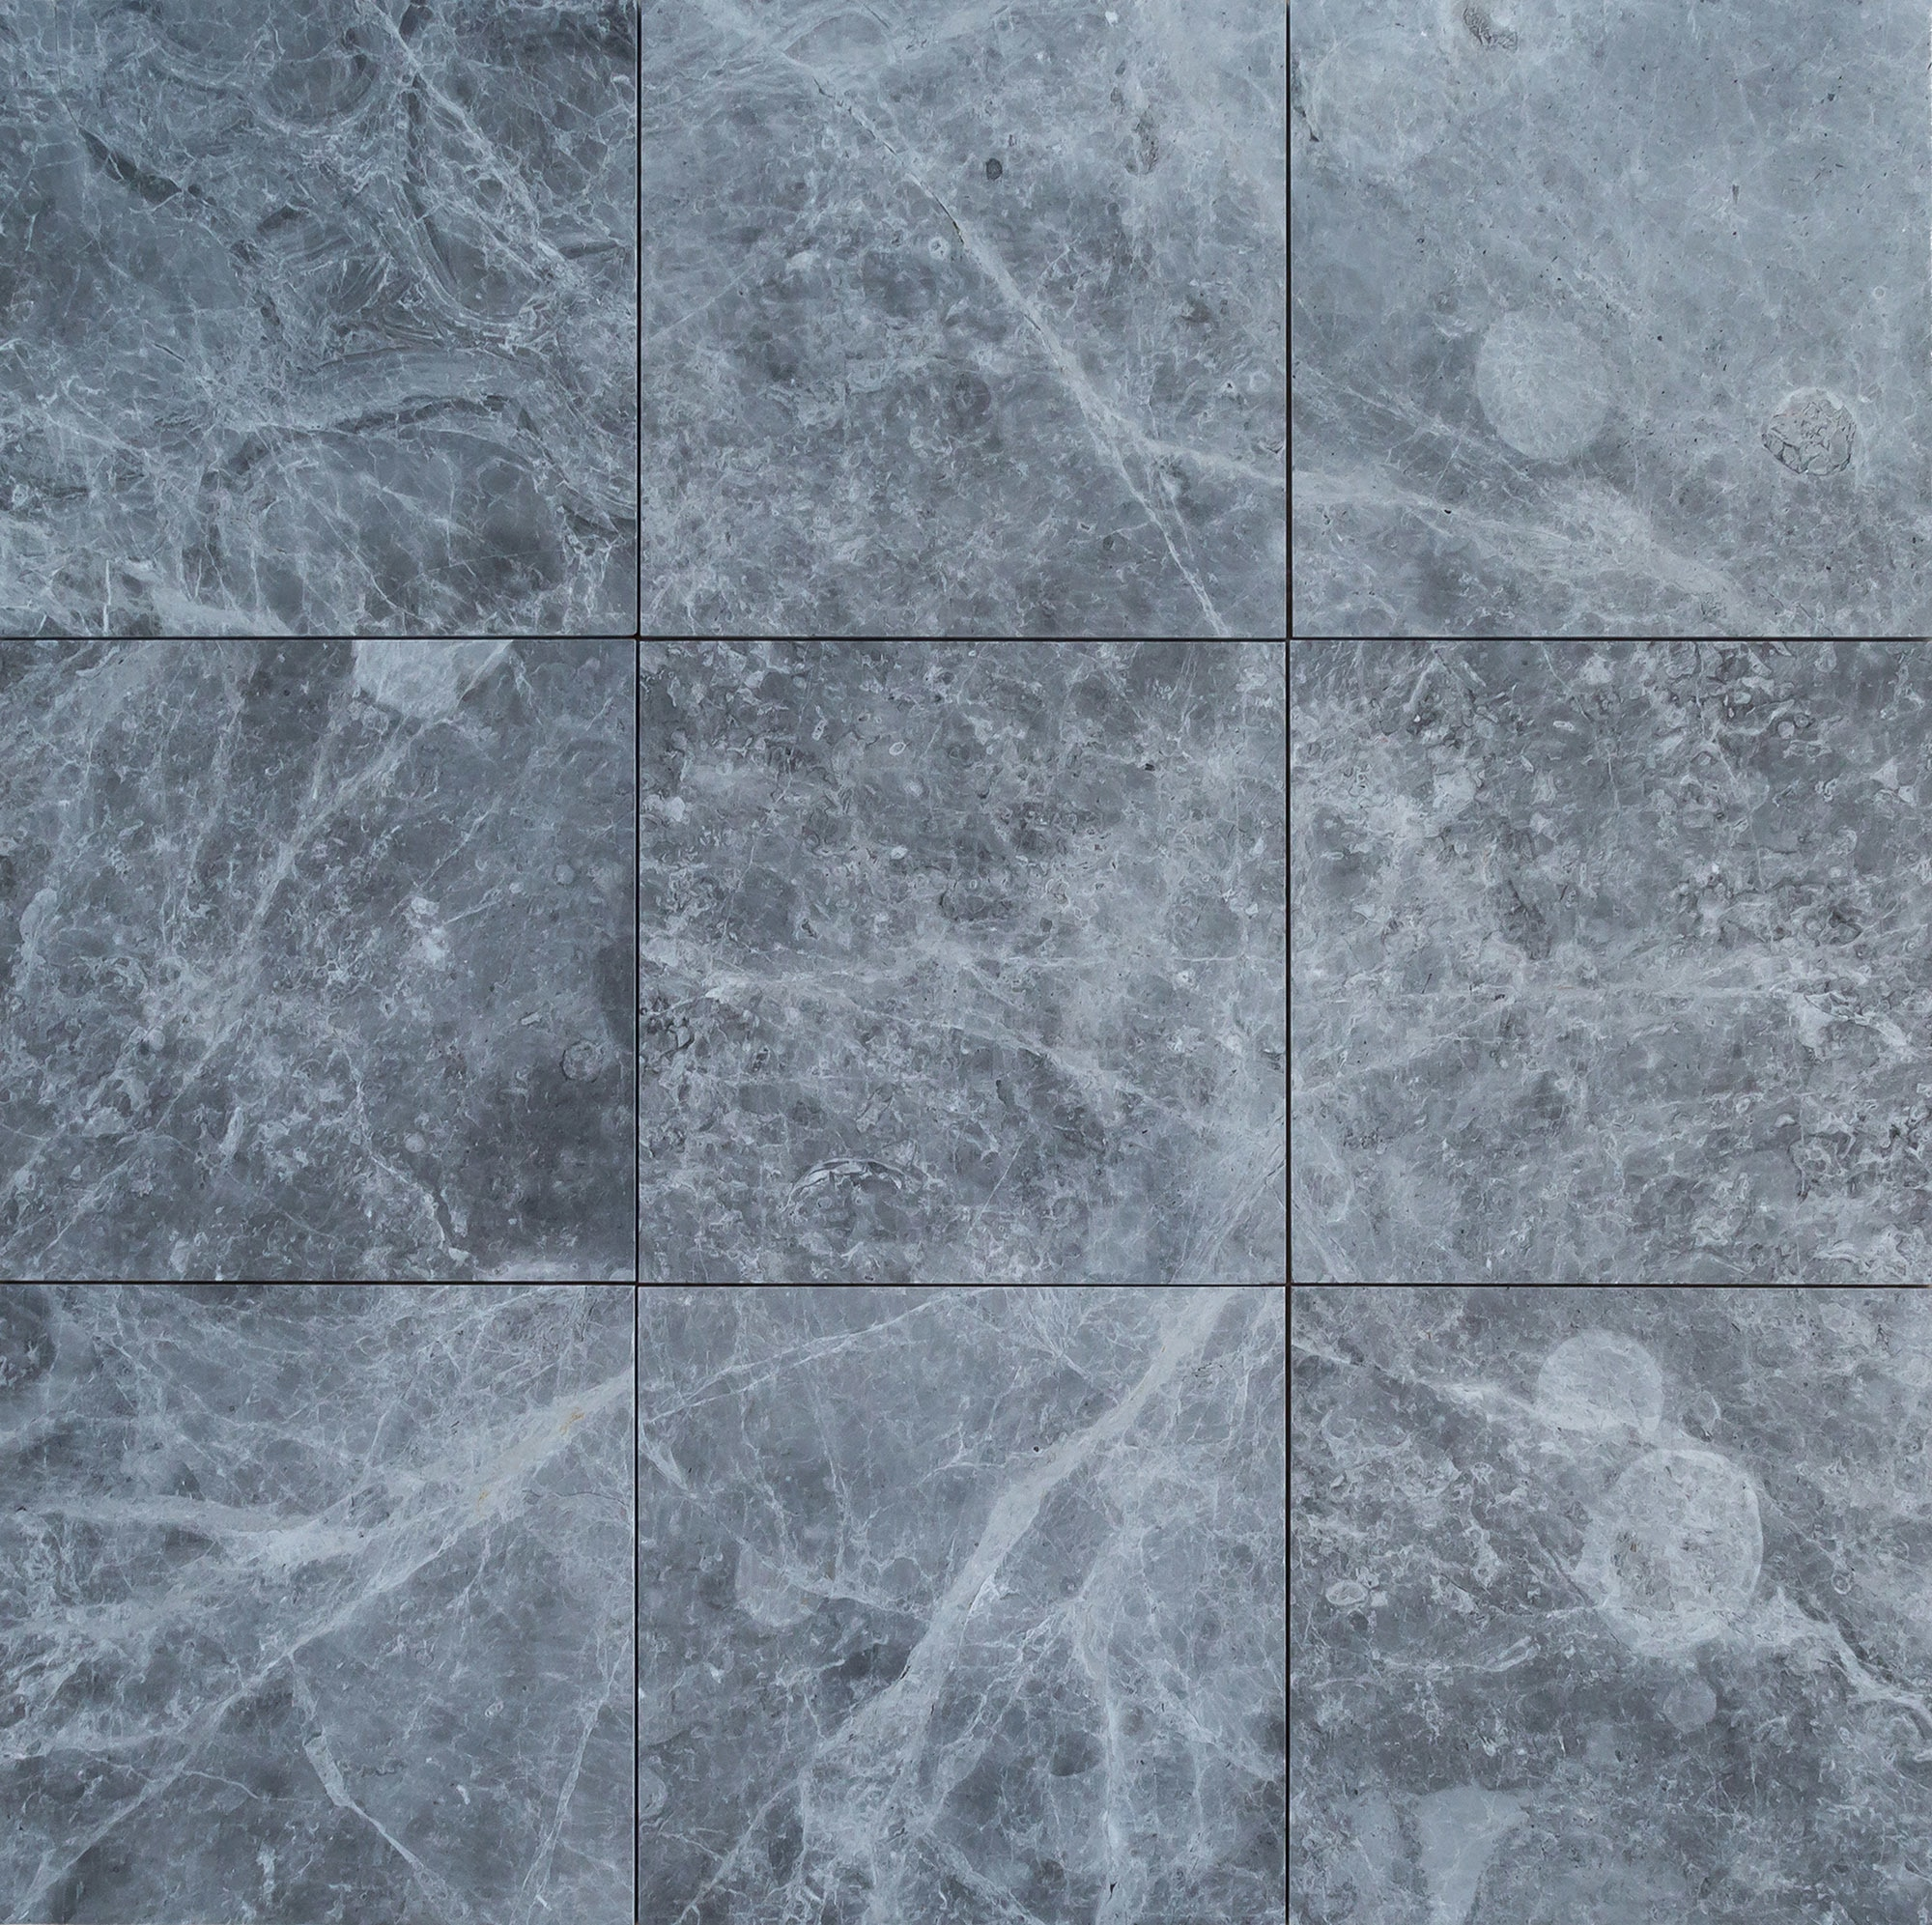 FREE Samples: Kesir Marble Tile - Polished Tundra Earth Gray / 12 ...